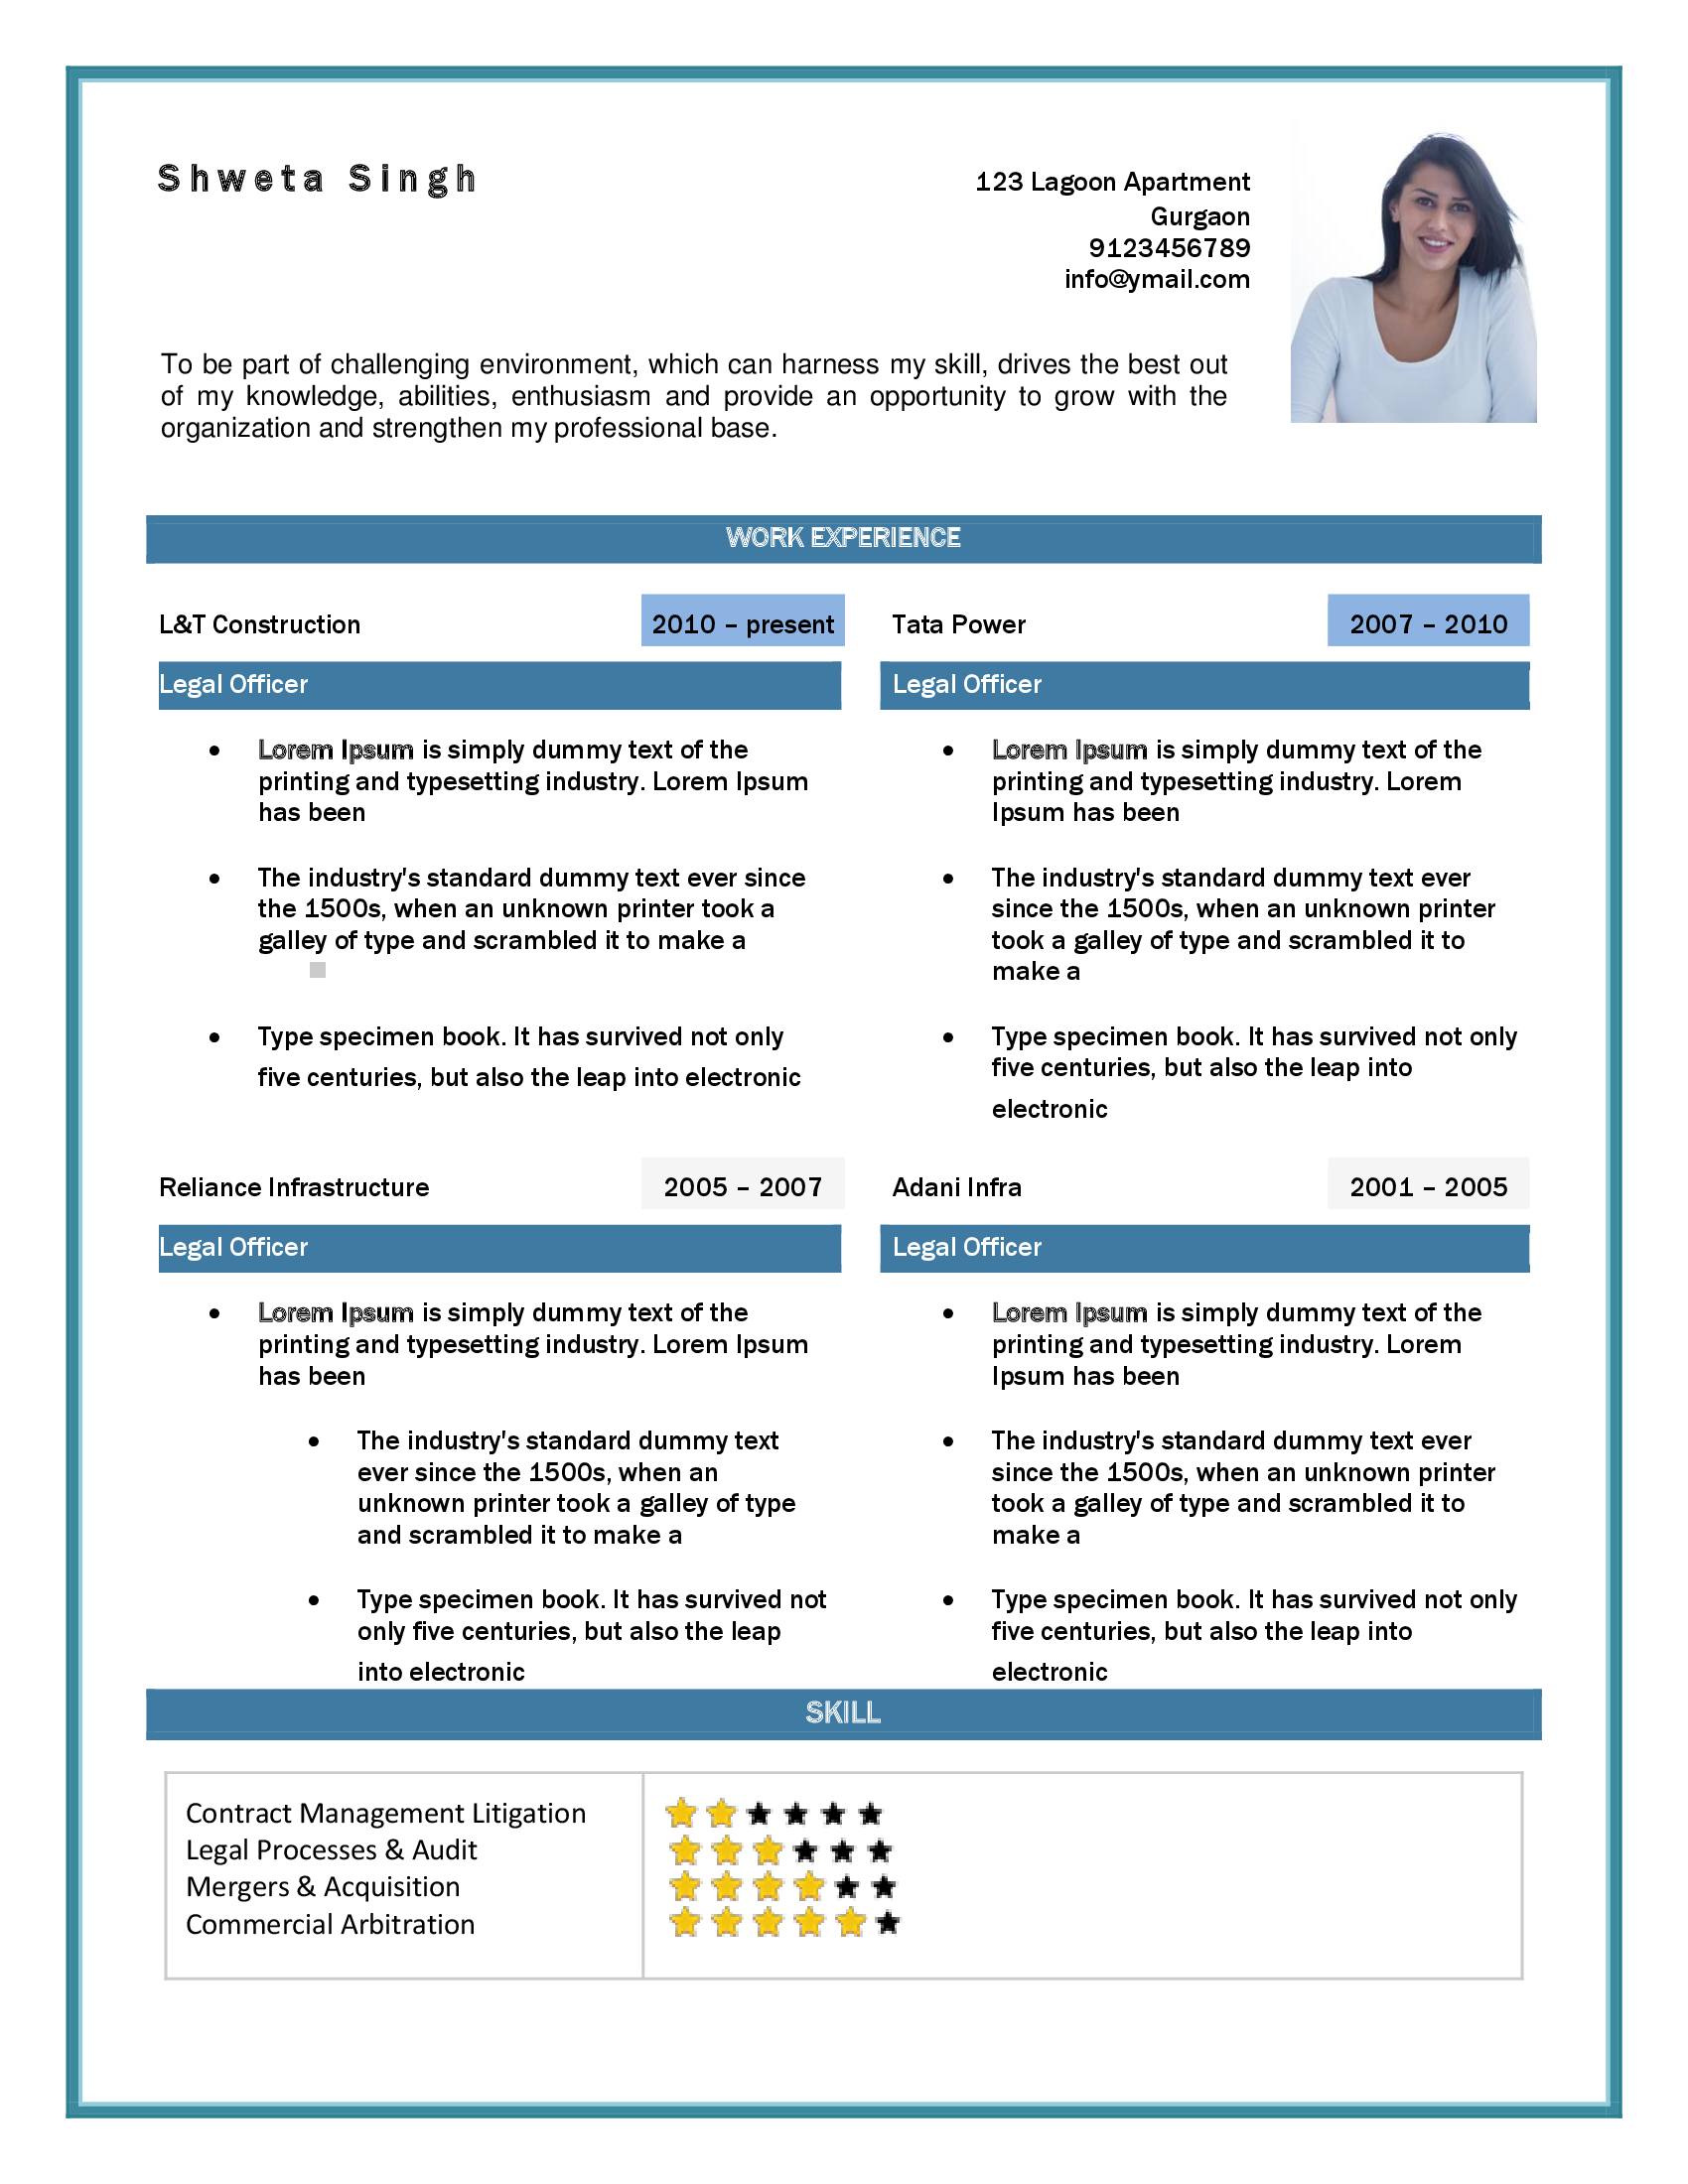 Opposenewapstandardsus  Pleasing Hr Executive Resume  Resume For Hr Executive  Hr Executive  With Heavenly Enter Your Details With Delightful Format Of A Resume Also Resume Questions In Addition Medical School Resume And Infographic Resume Template As Well As Update Resume Additionally Accounting Resume Examples From Resumetemplatesamplescom With Opposenewapstandardsus  Heavenly Hr Executive Resume  Resume For Hr Executive  Hr Executive  With Delightful Enter Your Details And Pleasing Format Of A Resume Also Resume Questions In Addition Medical School Resume From Resumetemplatesamplescom